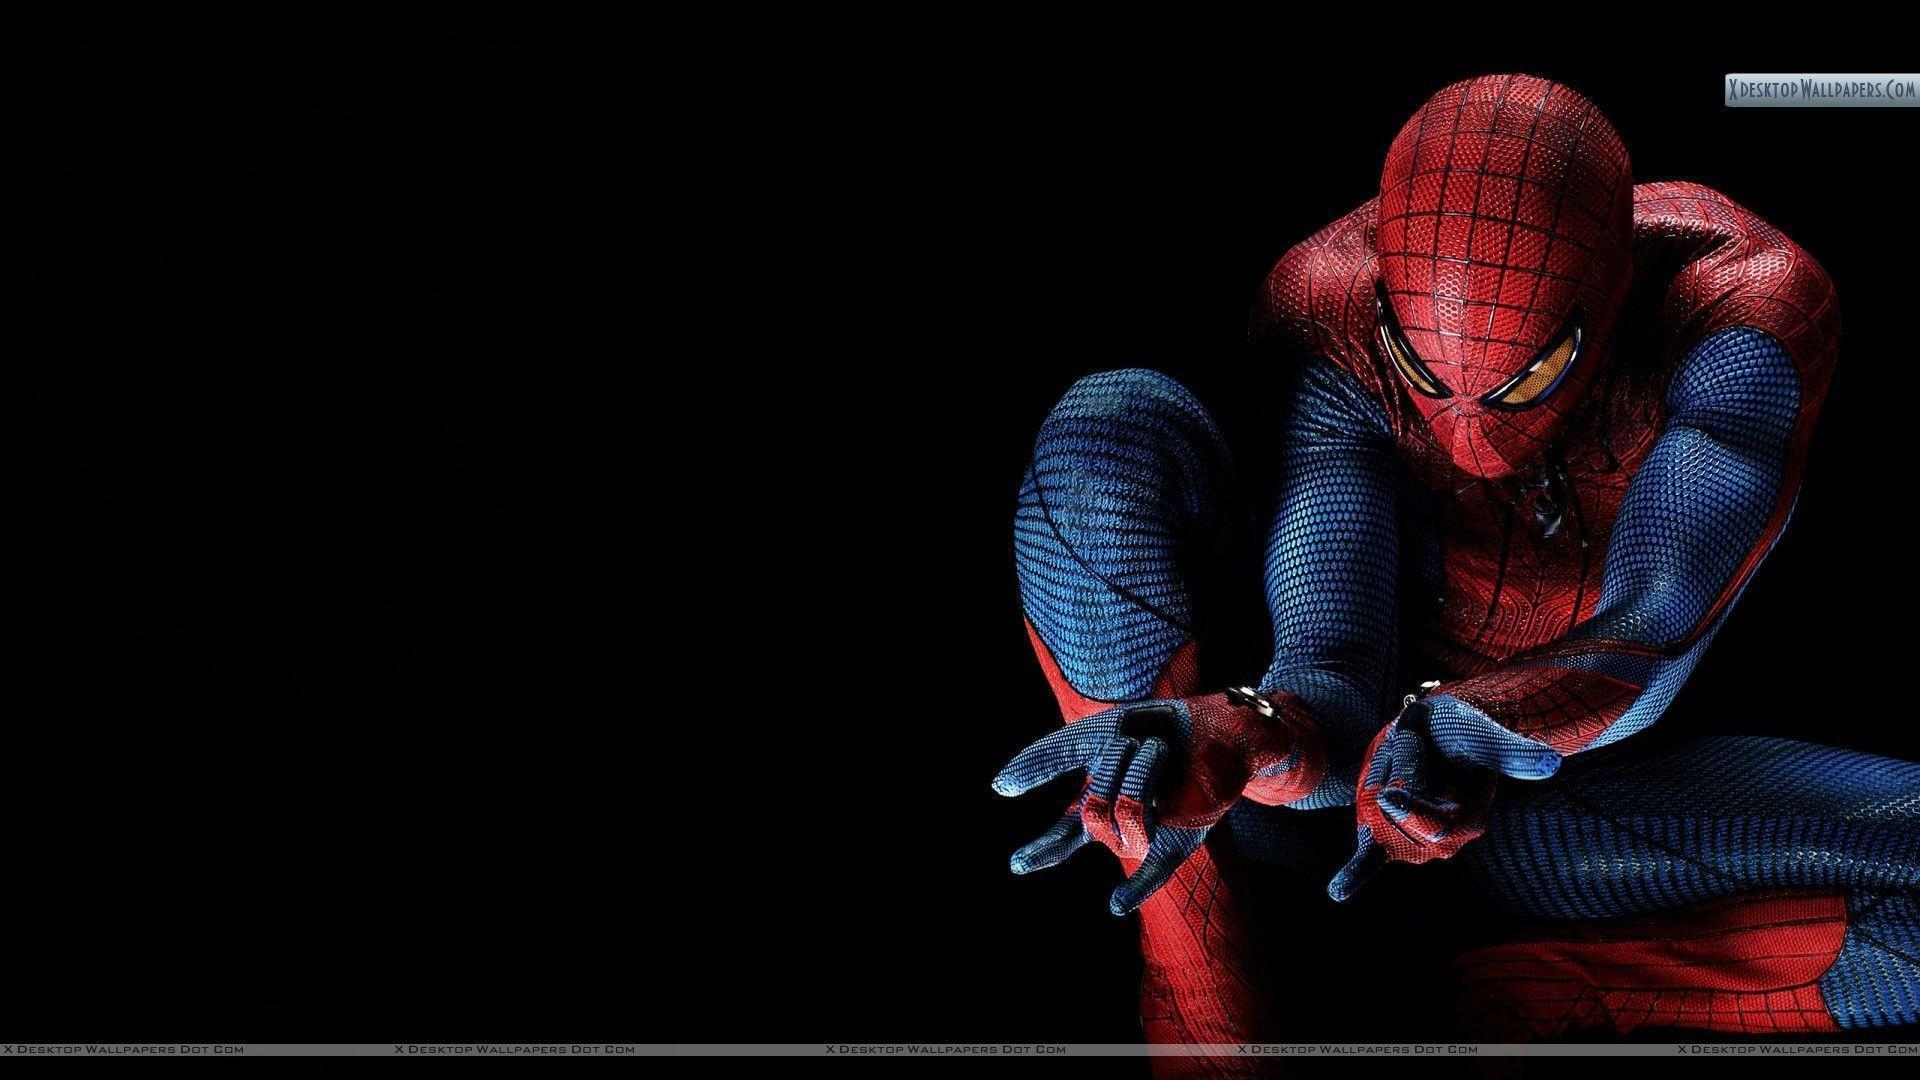 The amazing spider man free wallpapers